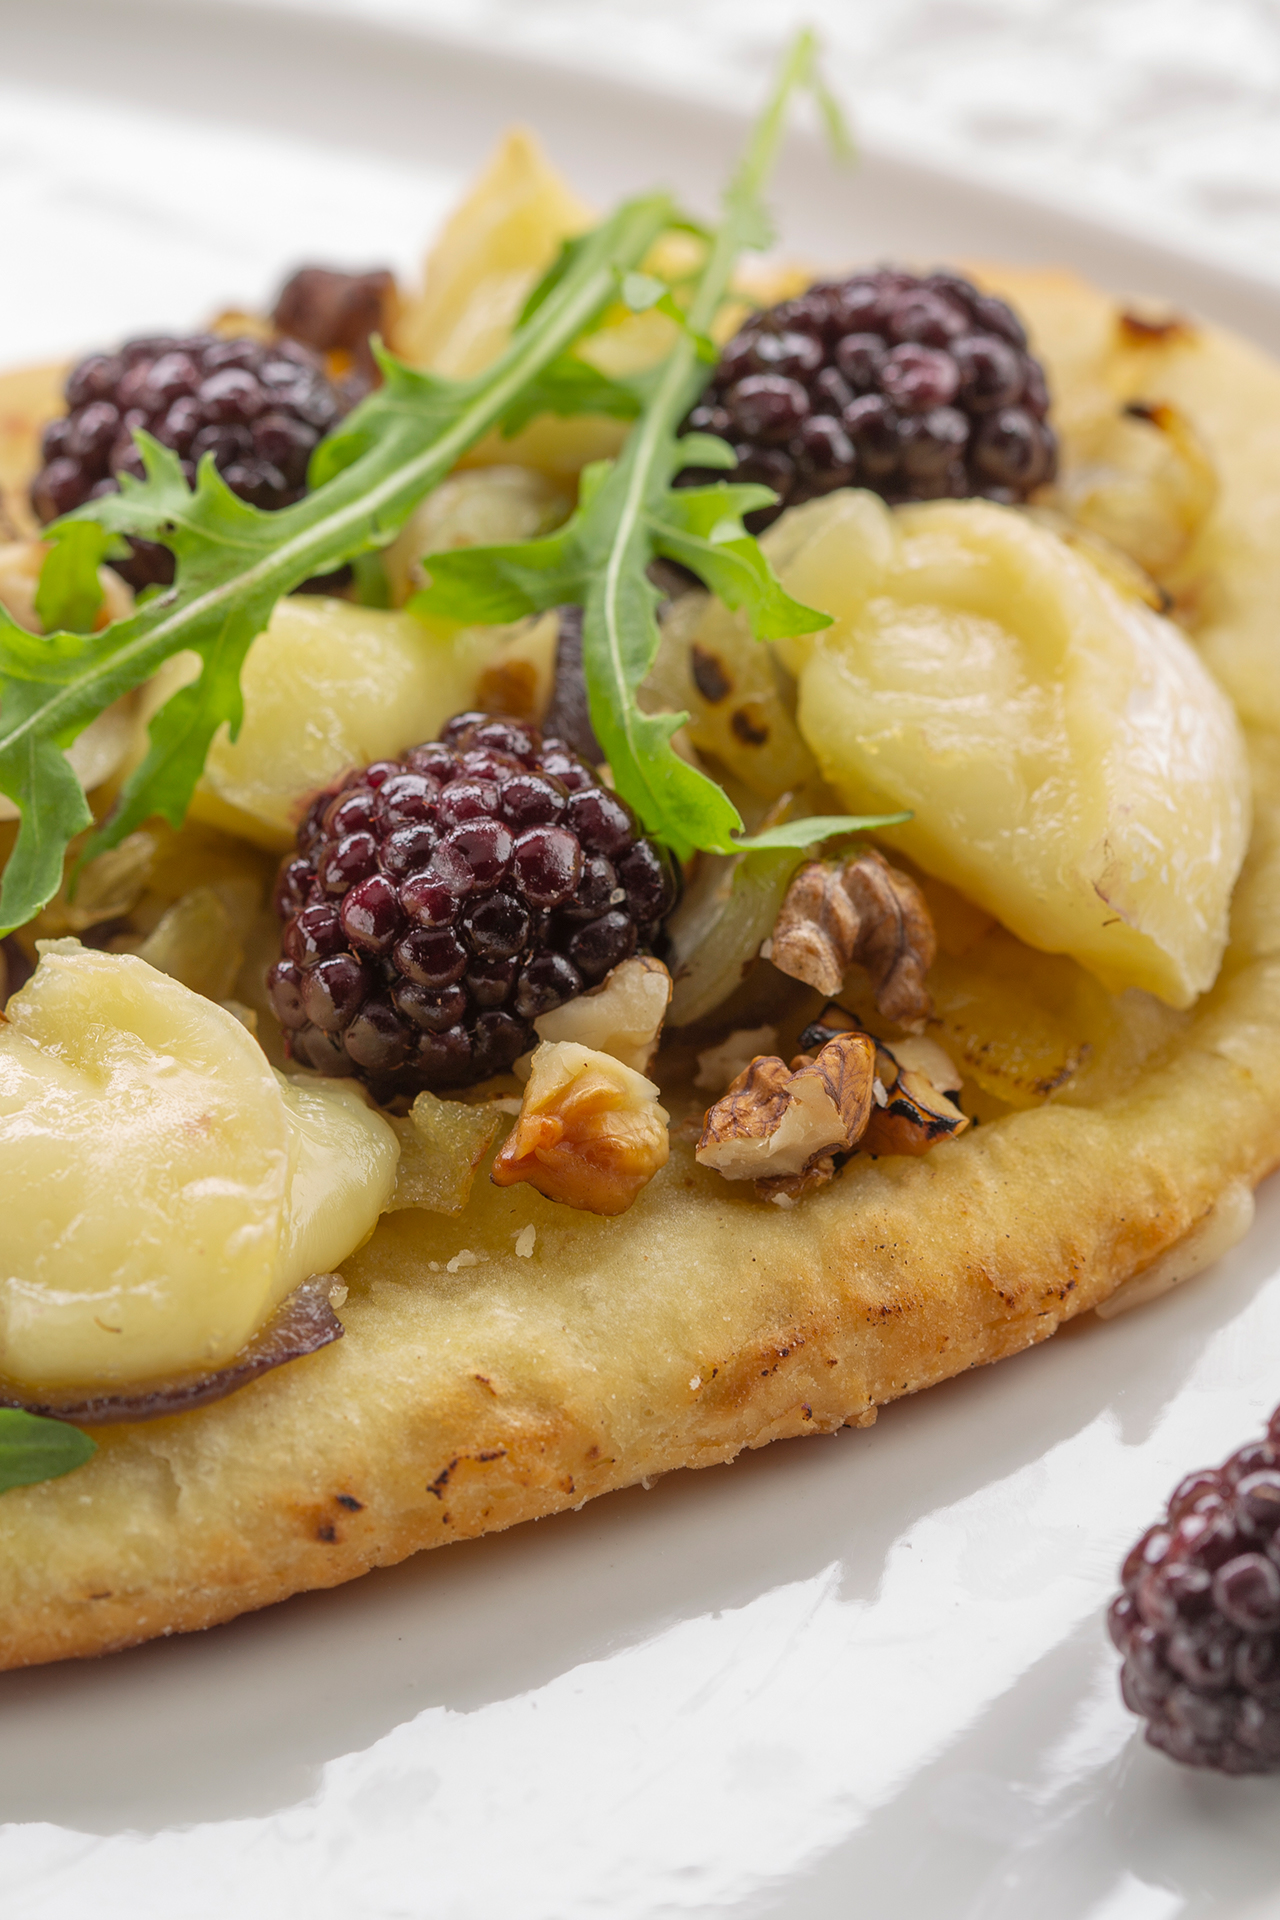 Blackberry and Brie au Bleu mini pizza